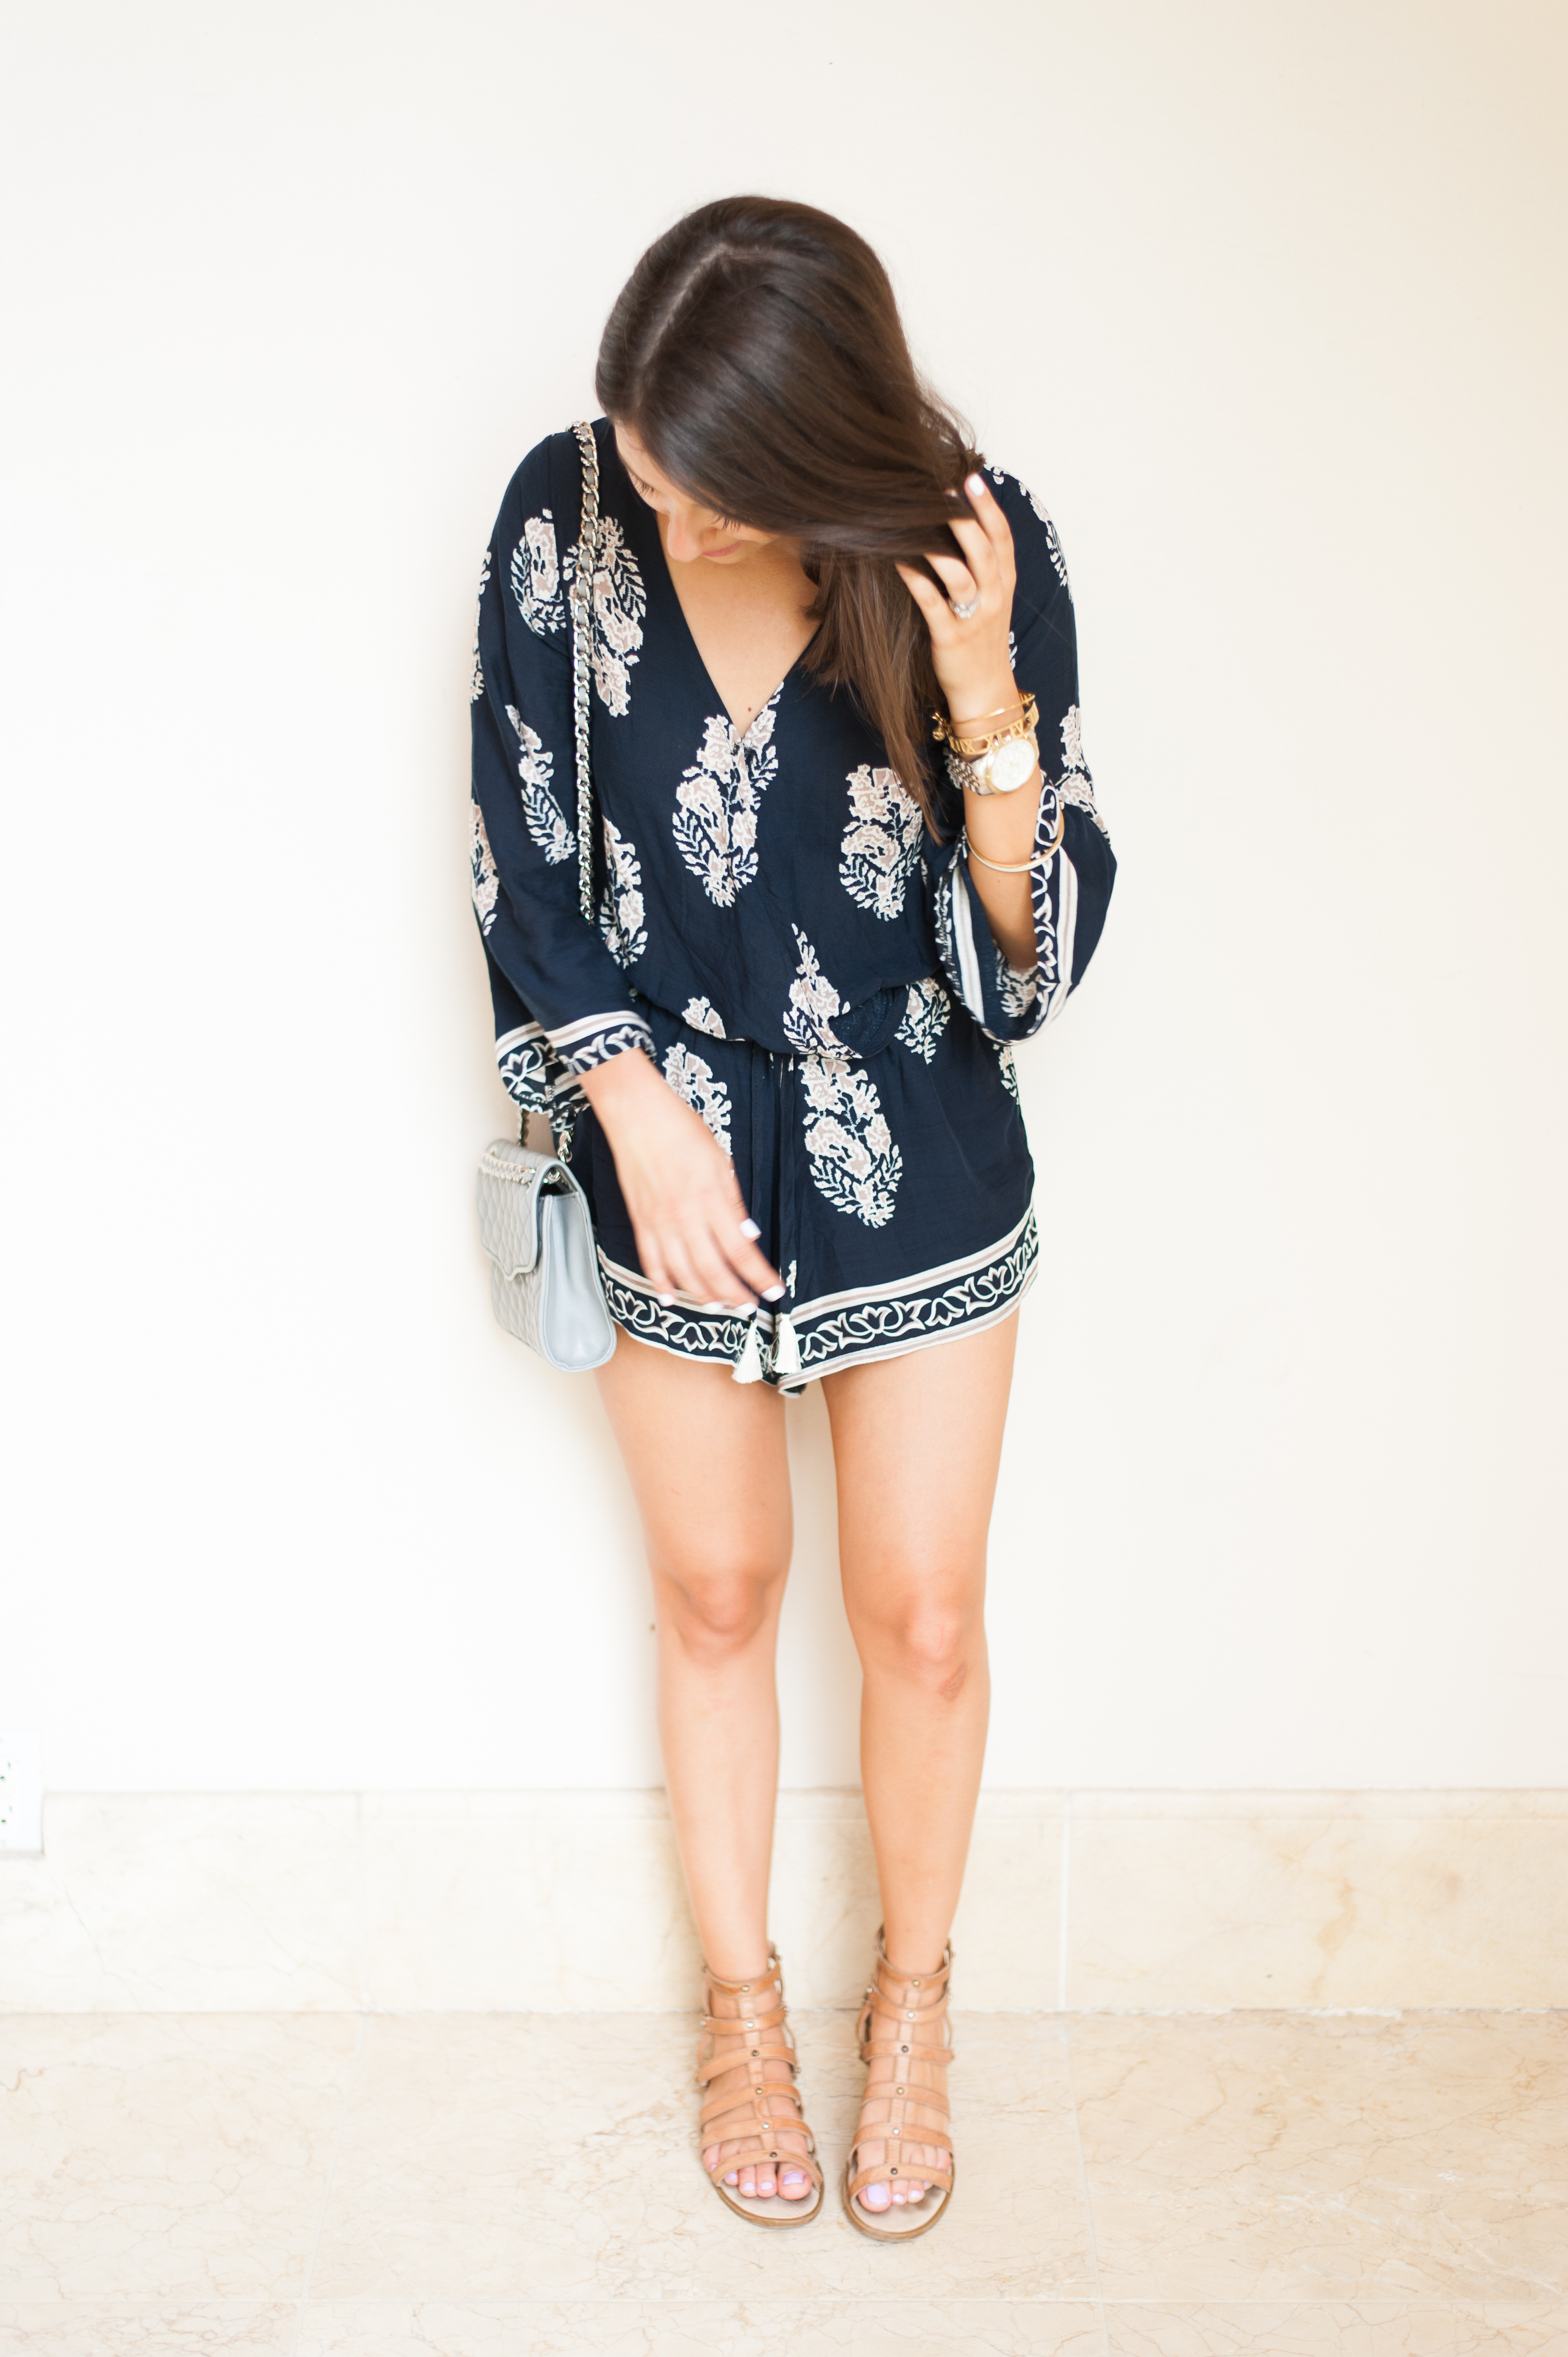 Dress Up Buttercup // A Houston-based fashion and inspiration blog developed to daily inspire your own personal style by Dede Raad   Playsuit Romper